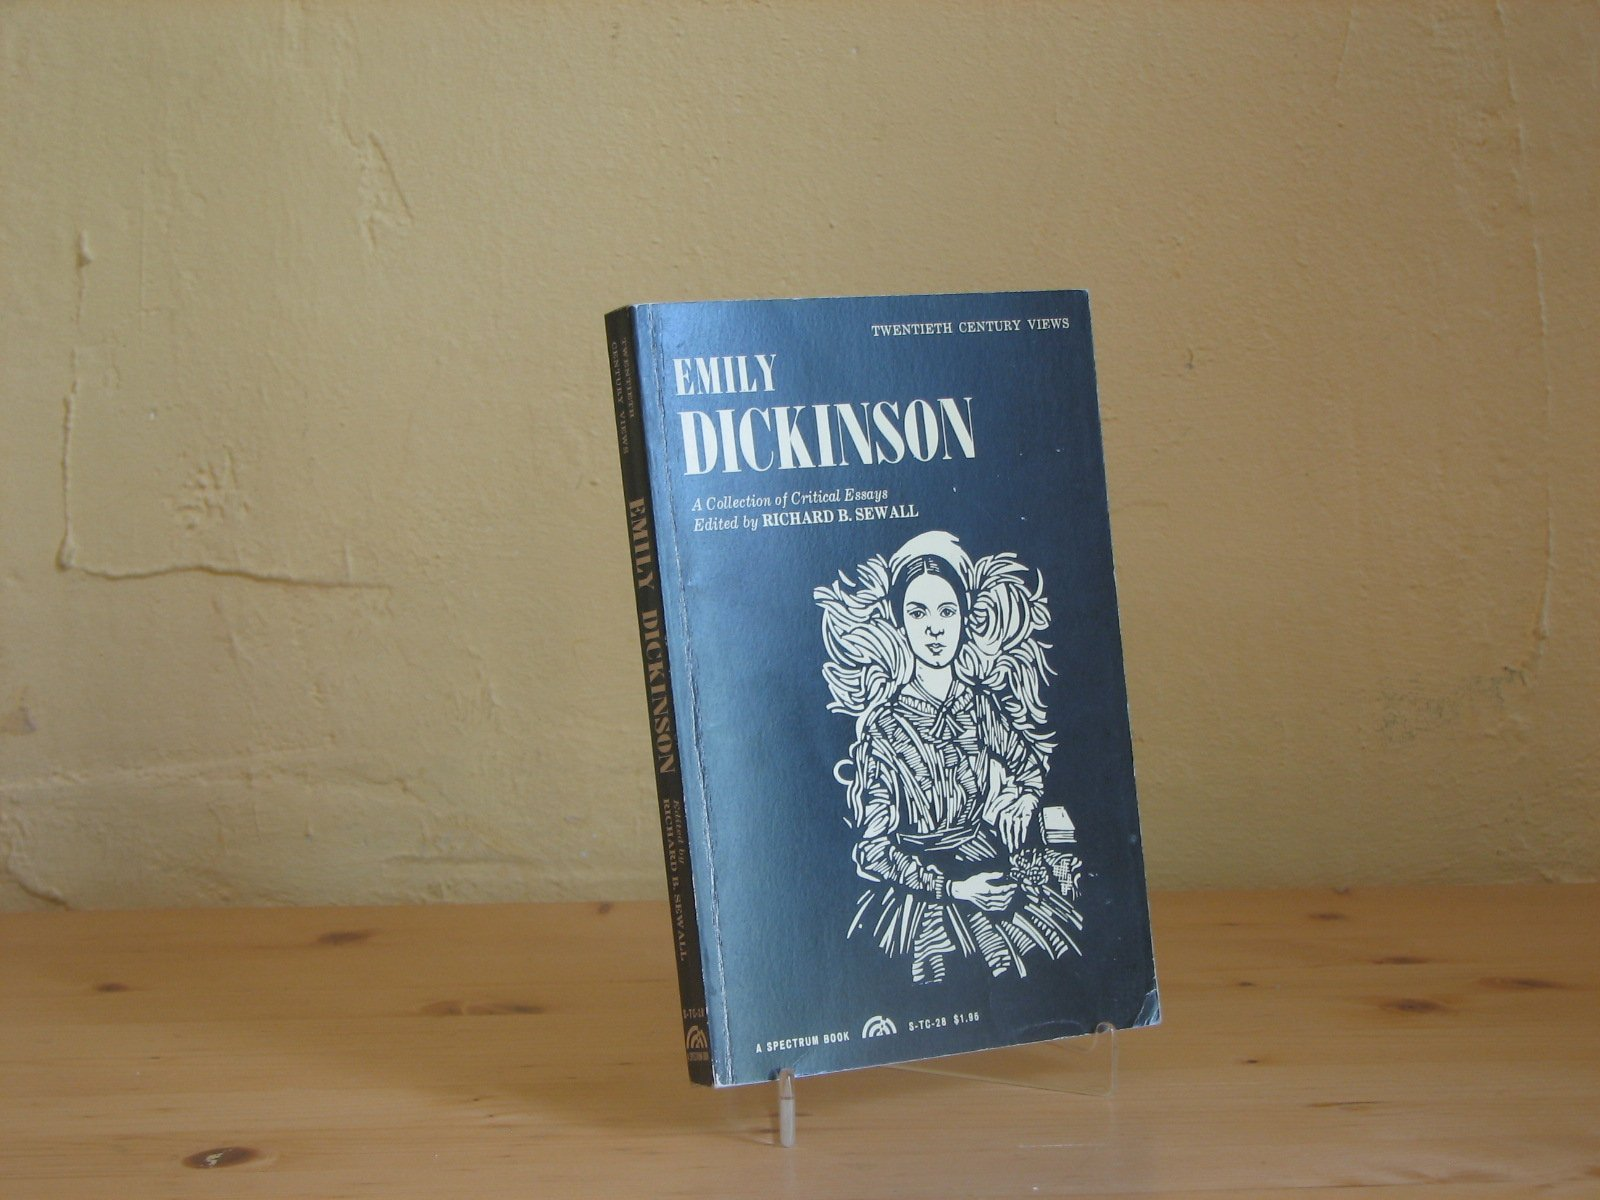 emily dickinson a collection of critical essays richard benson emily dickinson a collection of critical essays richard benson sewall 9780132087858 com books